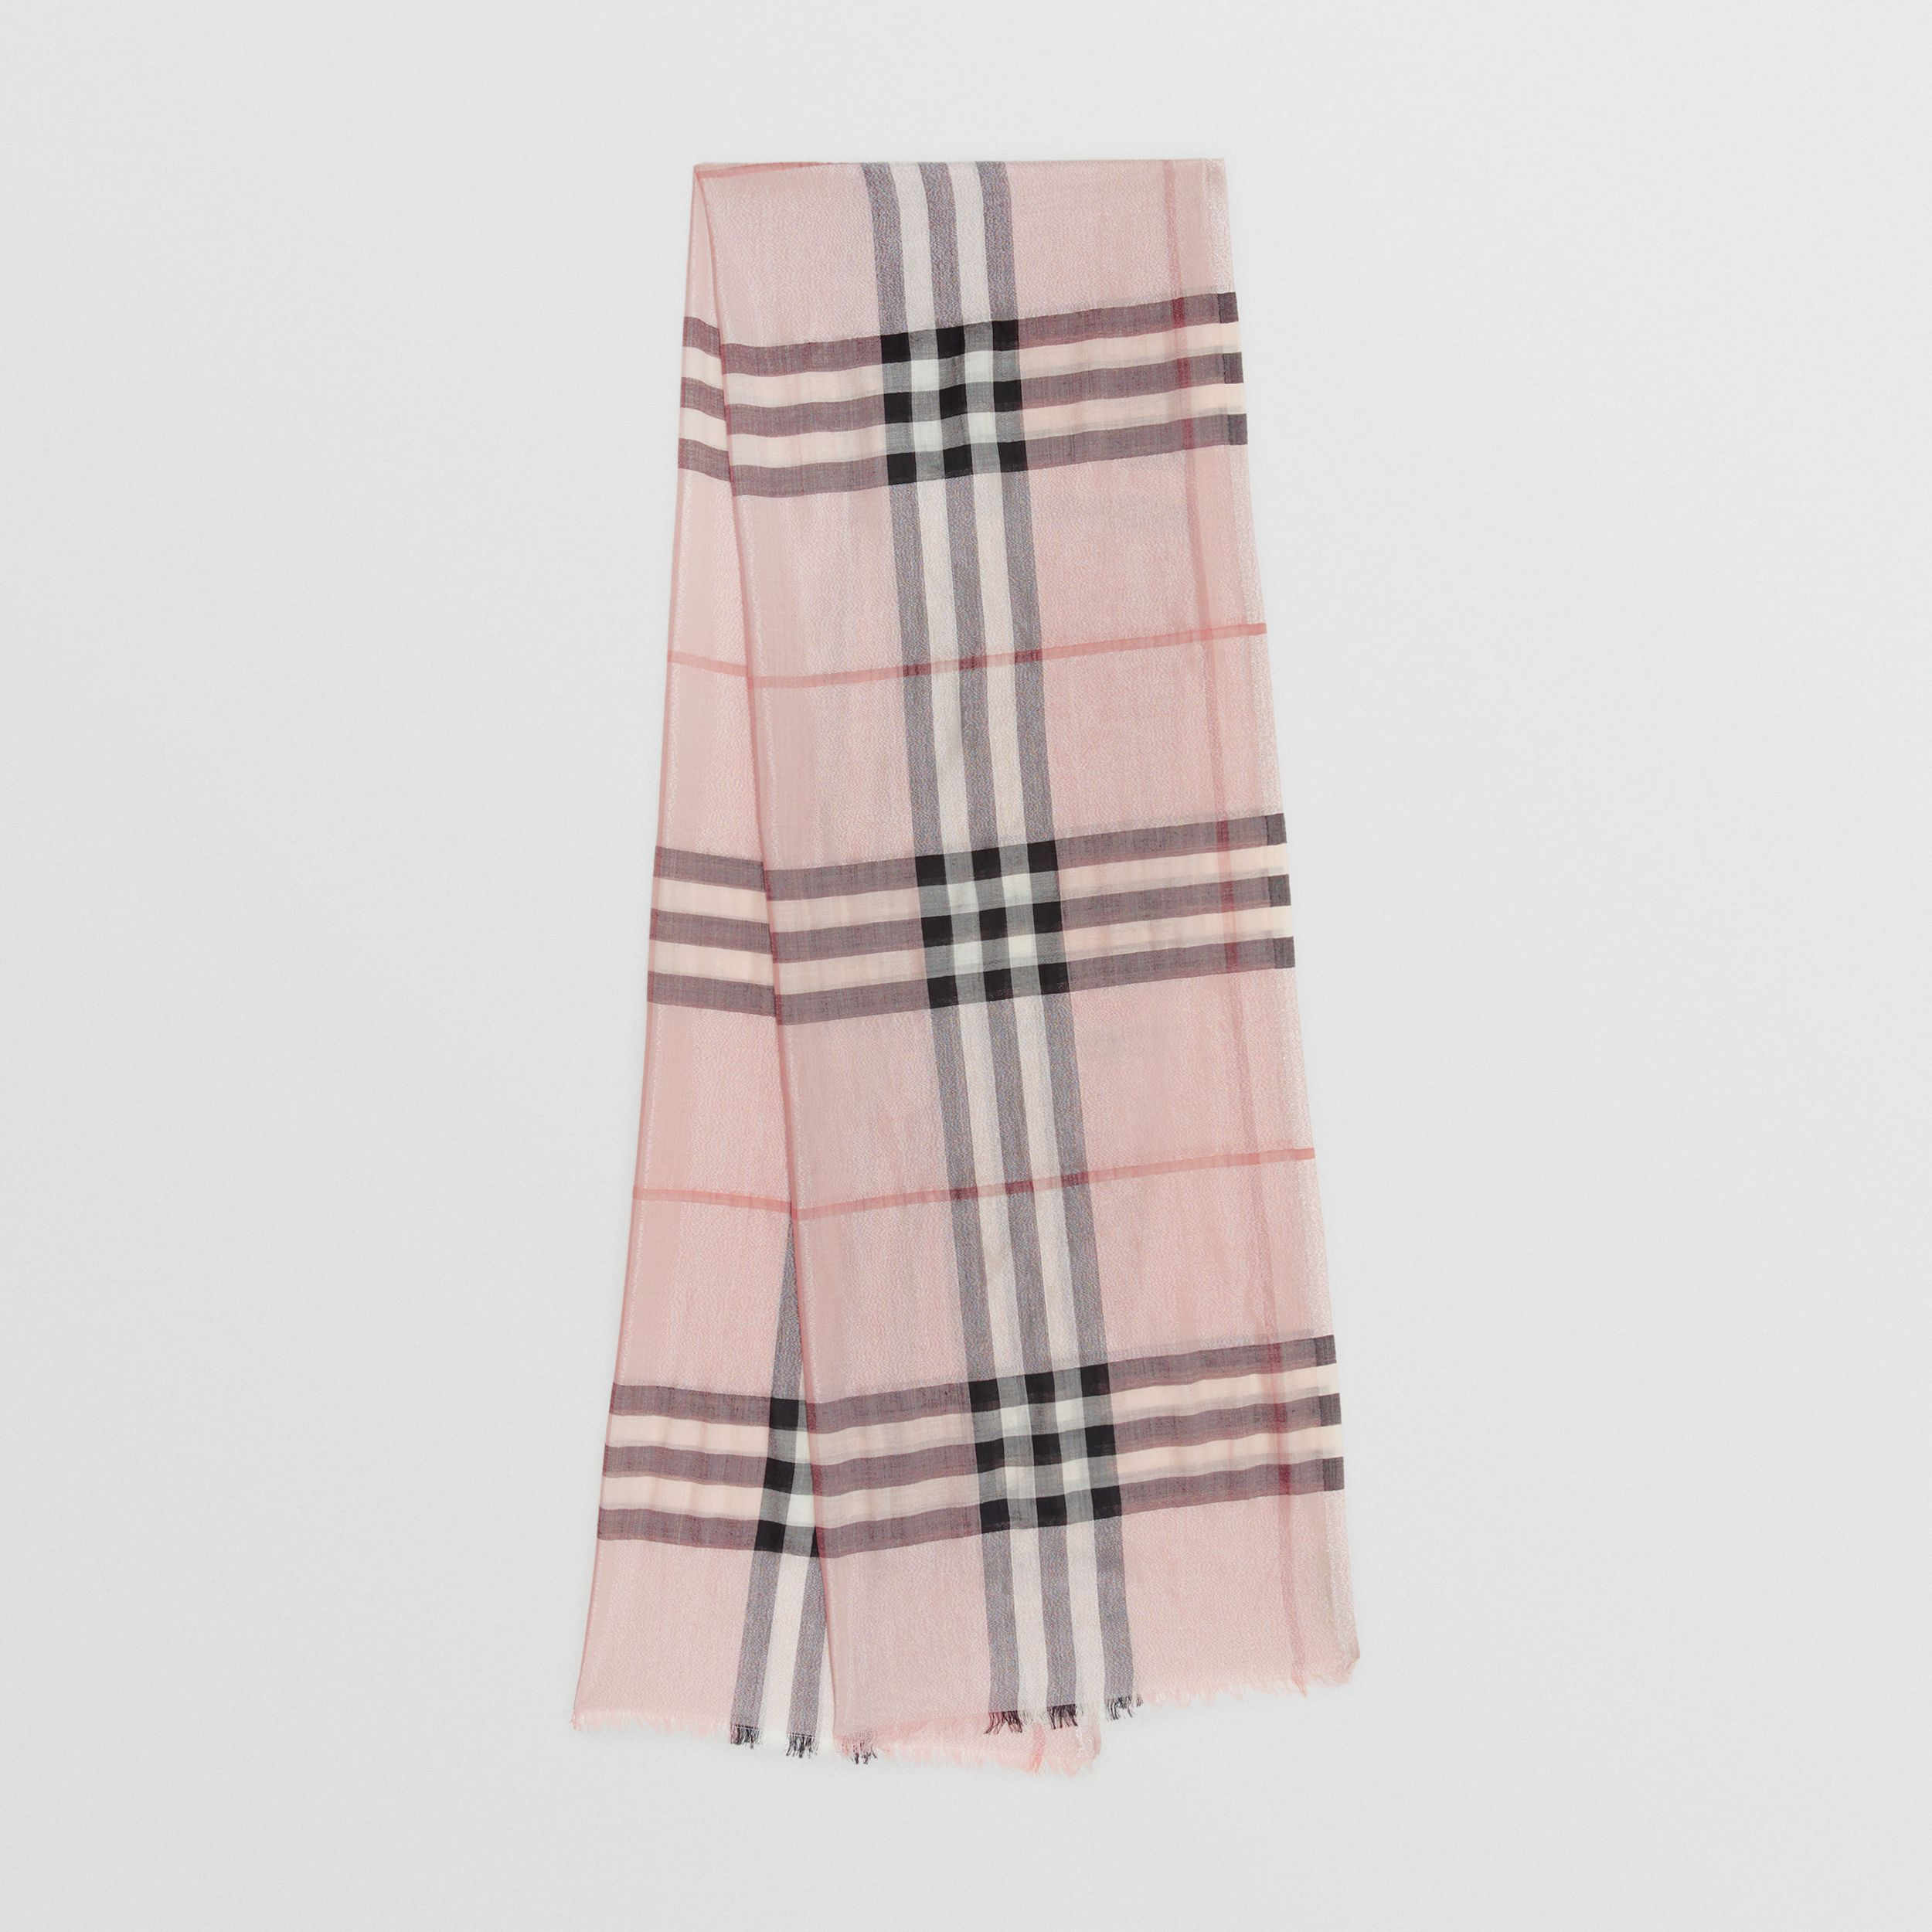 Metallic Check Silk and Wool Scarf in Ash Rose/silver | Burberry - 1